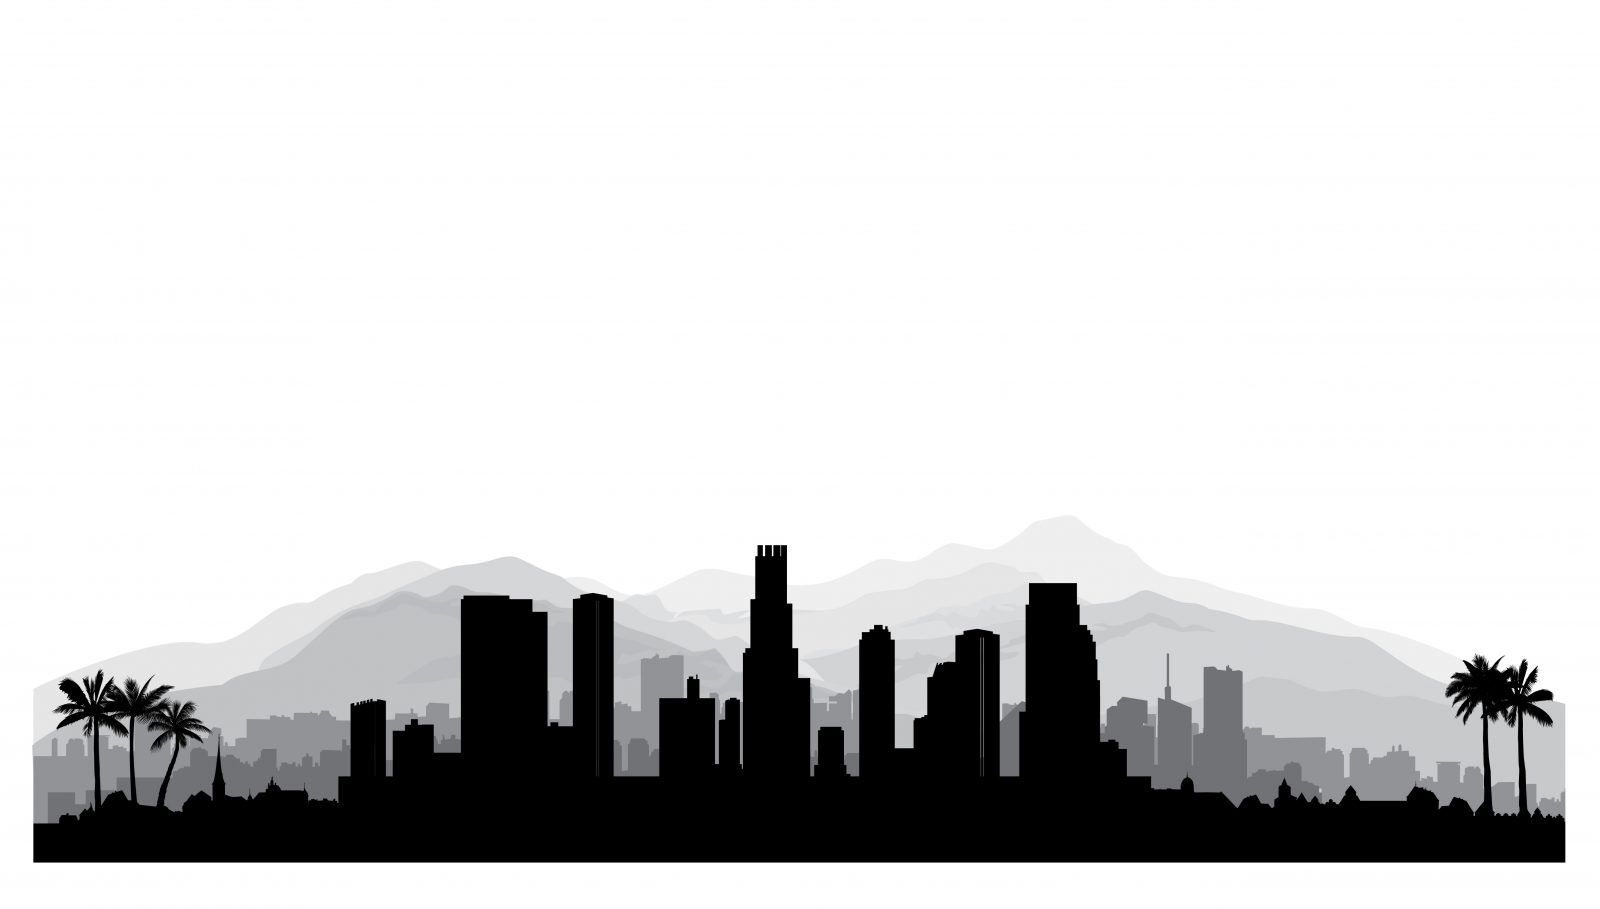 Los Angeles Skyline With Mountains Layered Silhouette For Study City Silhouette Los Angeles Landscape Los Angeles Skyline